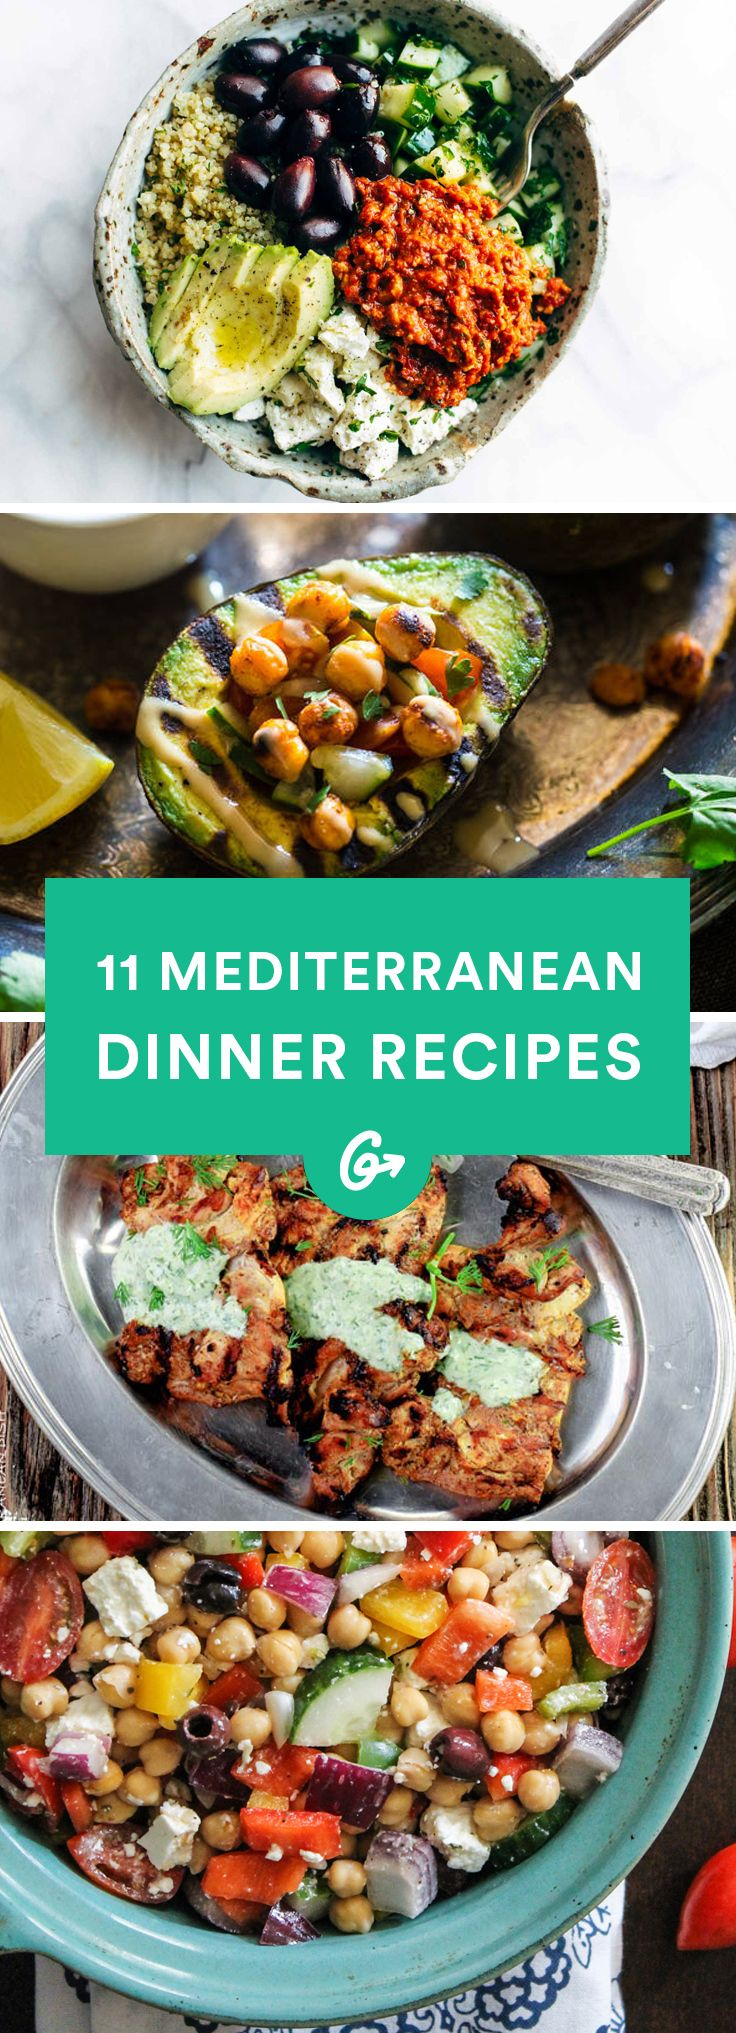 13 Mediterranean-Inspired Dinners to Spice Up Your Weeknight Routine